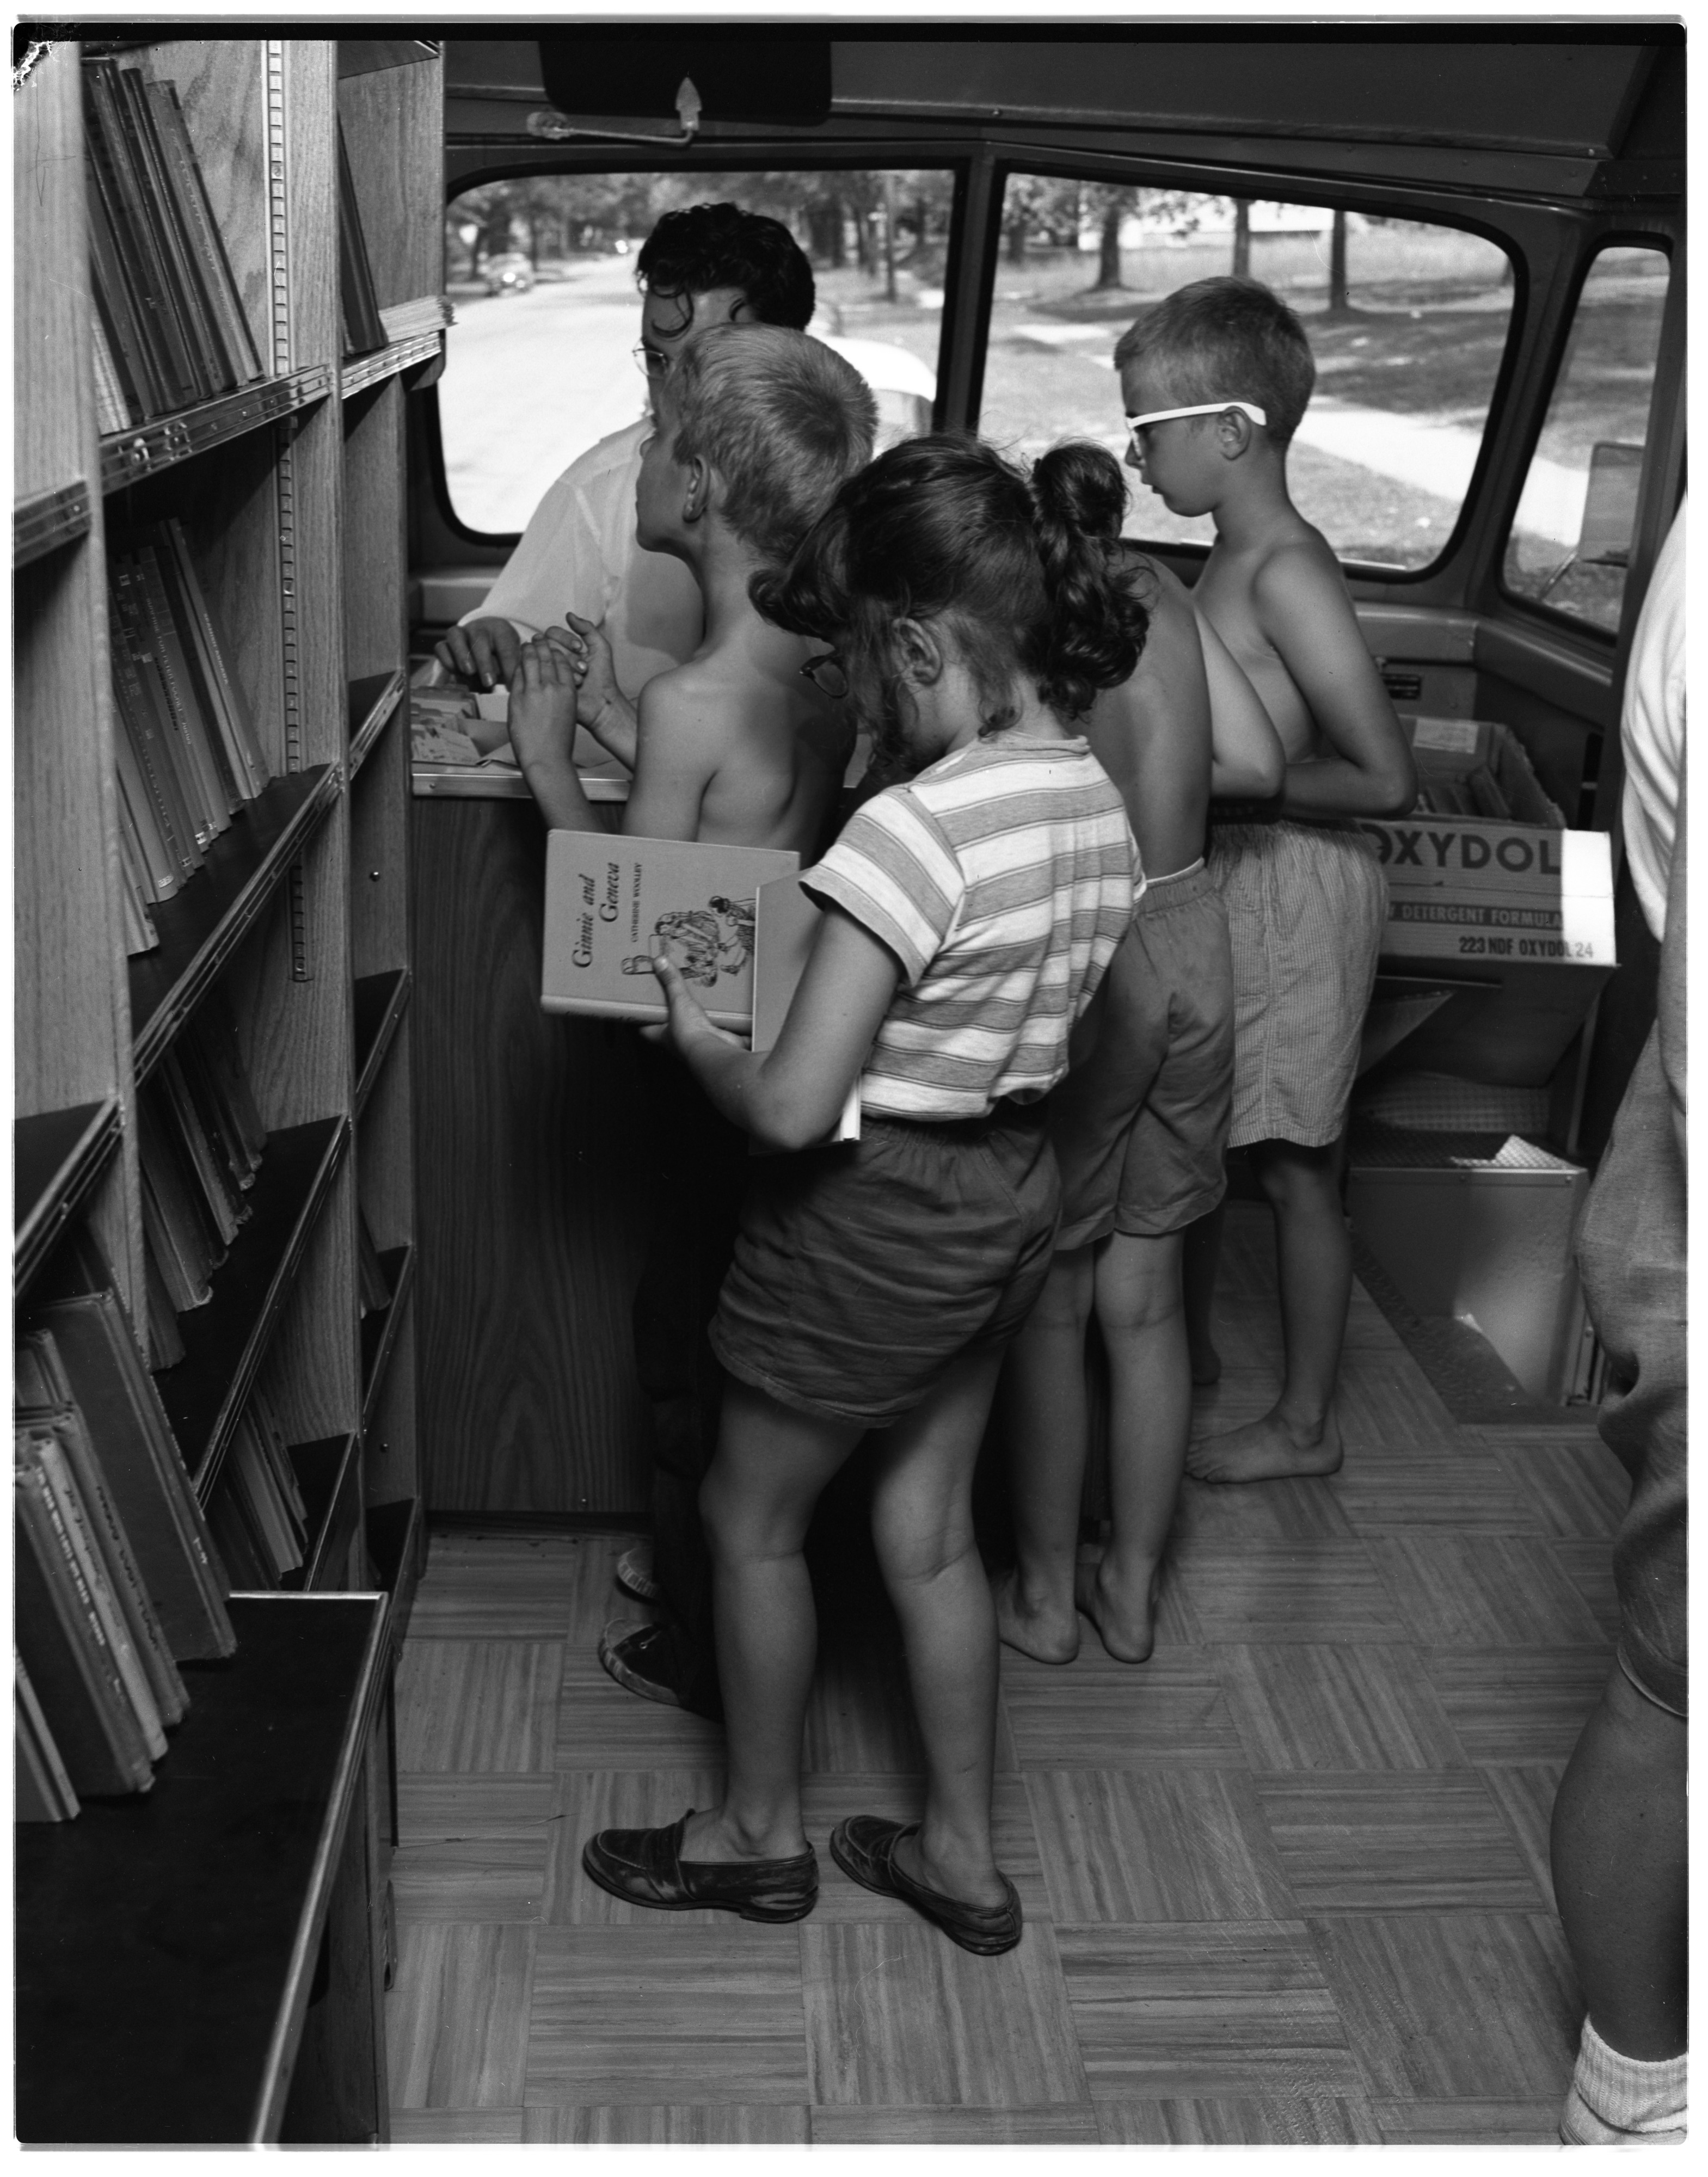 The Ann Arbor Public Library's New Bookmobile, July 1955 image